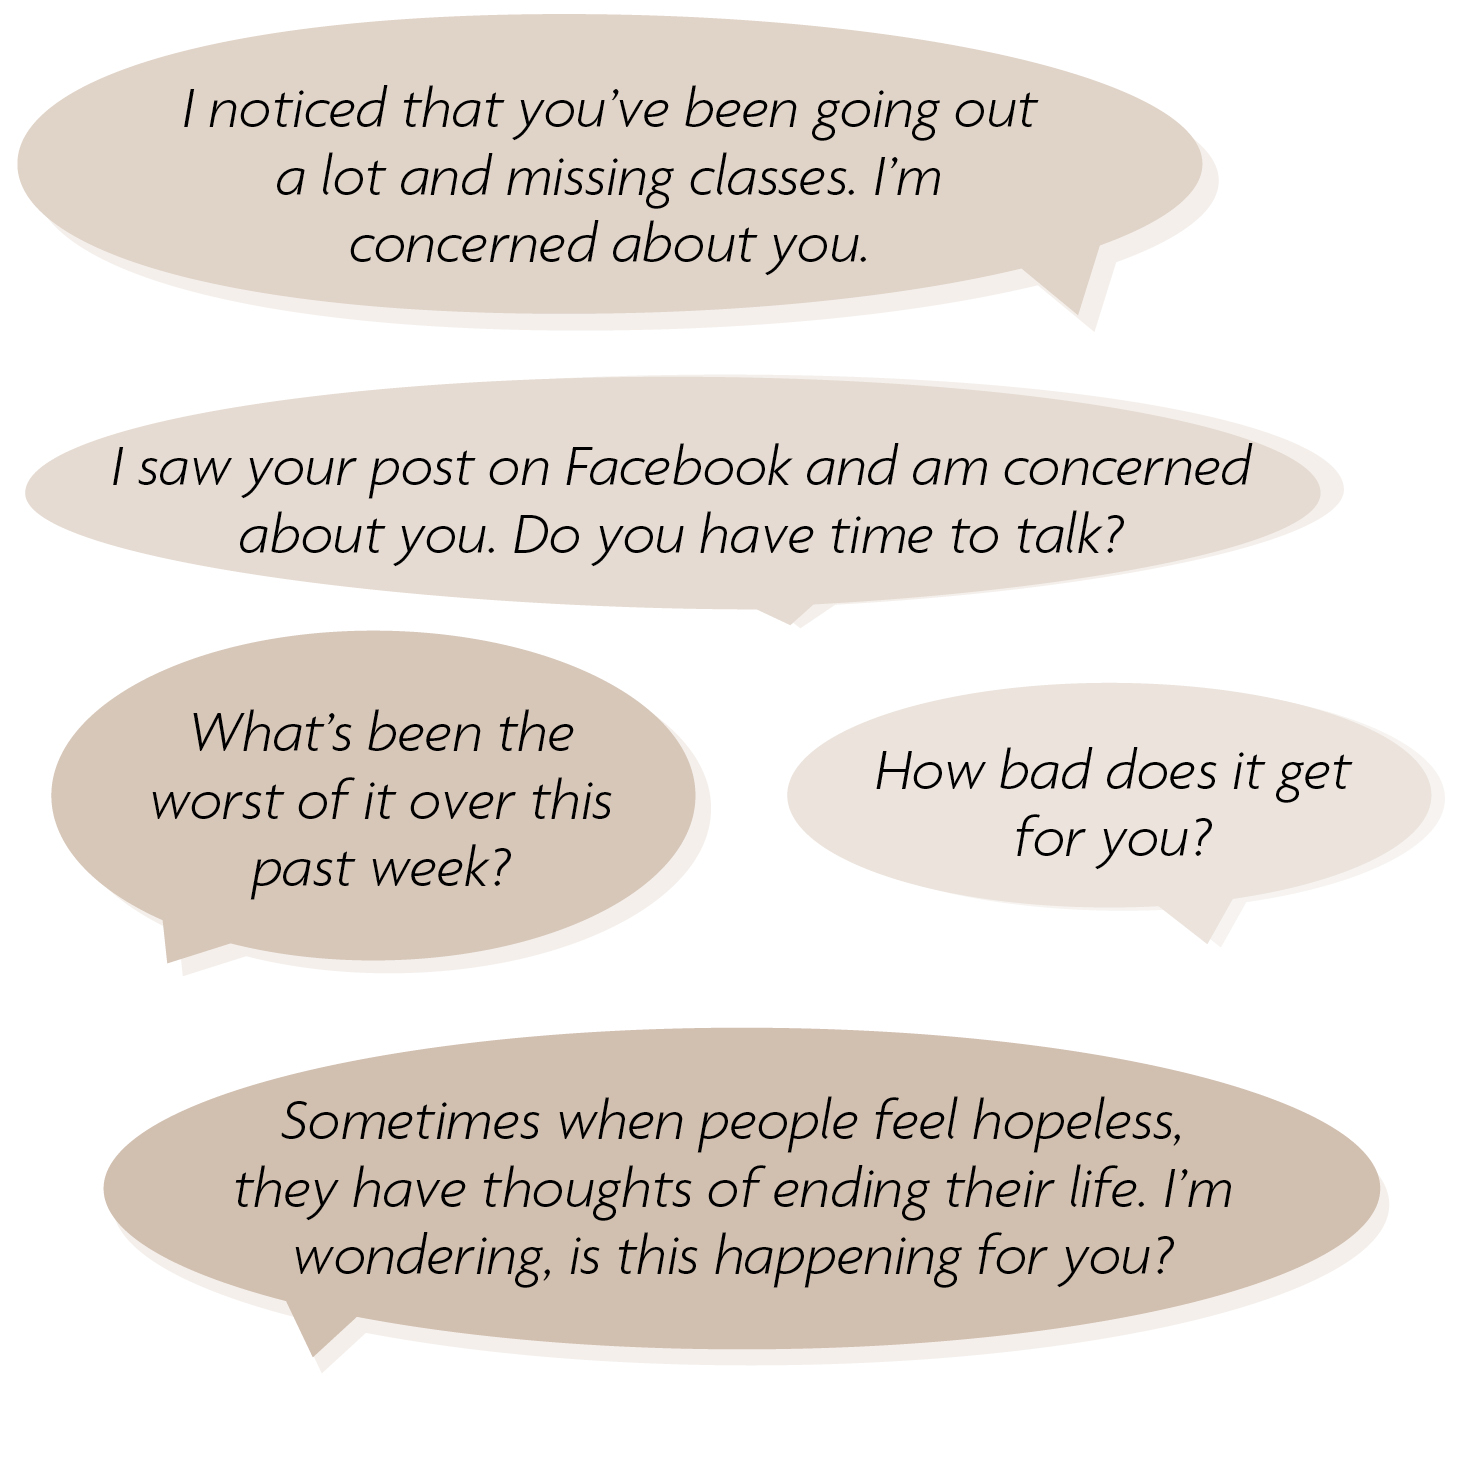 """""""I noticed that you've been going out a lot and missing classes. I'm concerned about you."""" """"I saw your post on Facebook and am concerned about you. Do you have time to talk?"""" """"What's been the worst of it over this past week?"""" """"How bad does it get for you?"""" """"Sometimes when people feel hopeless, they have thoughts of ending their life. I'm wondering, is this happening for you?"""""""